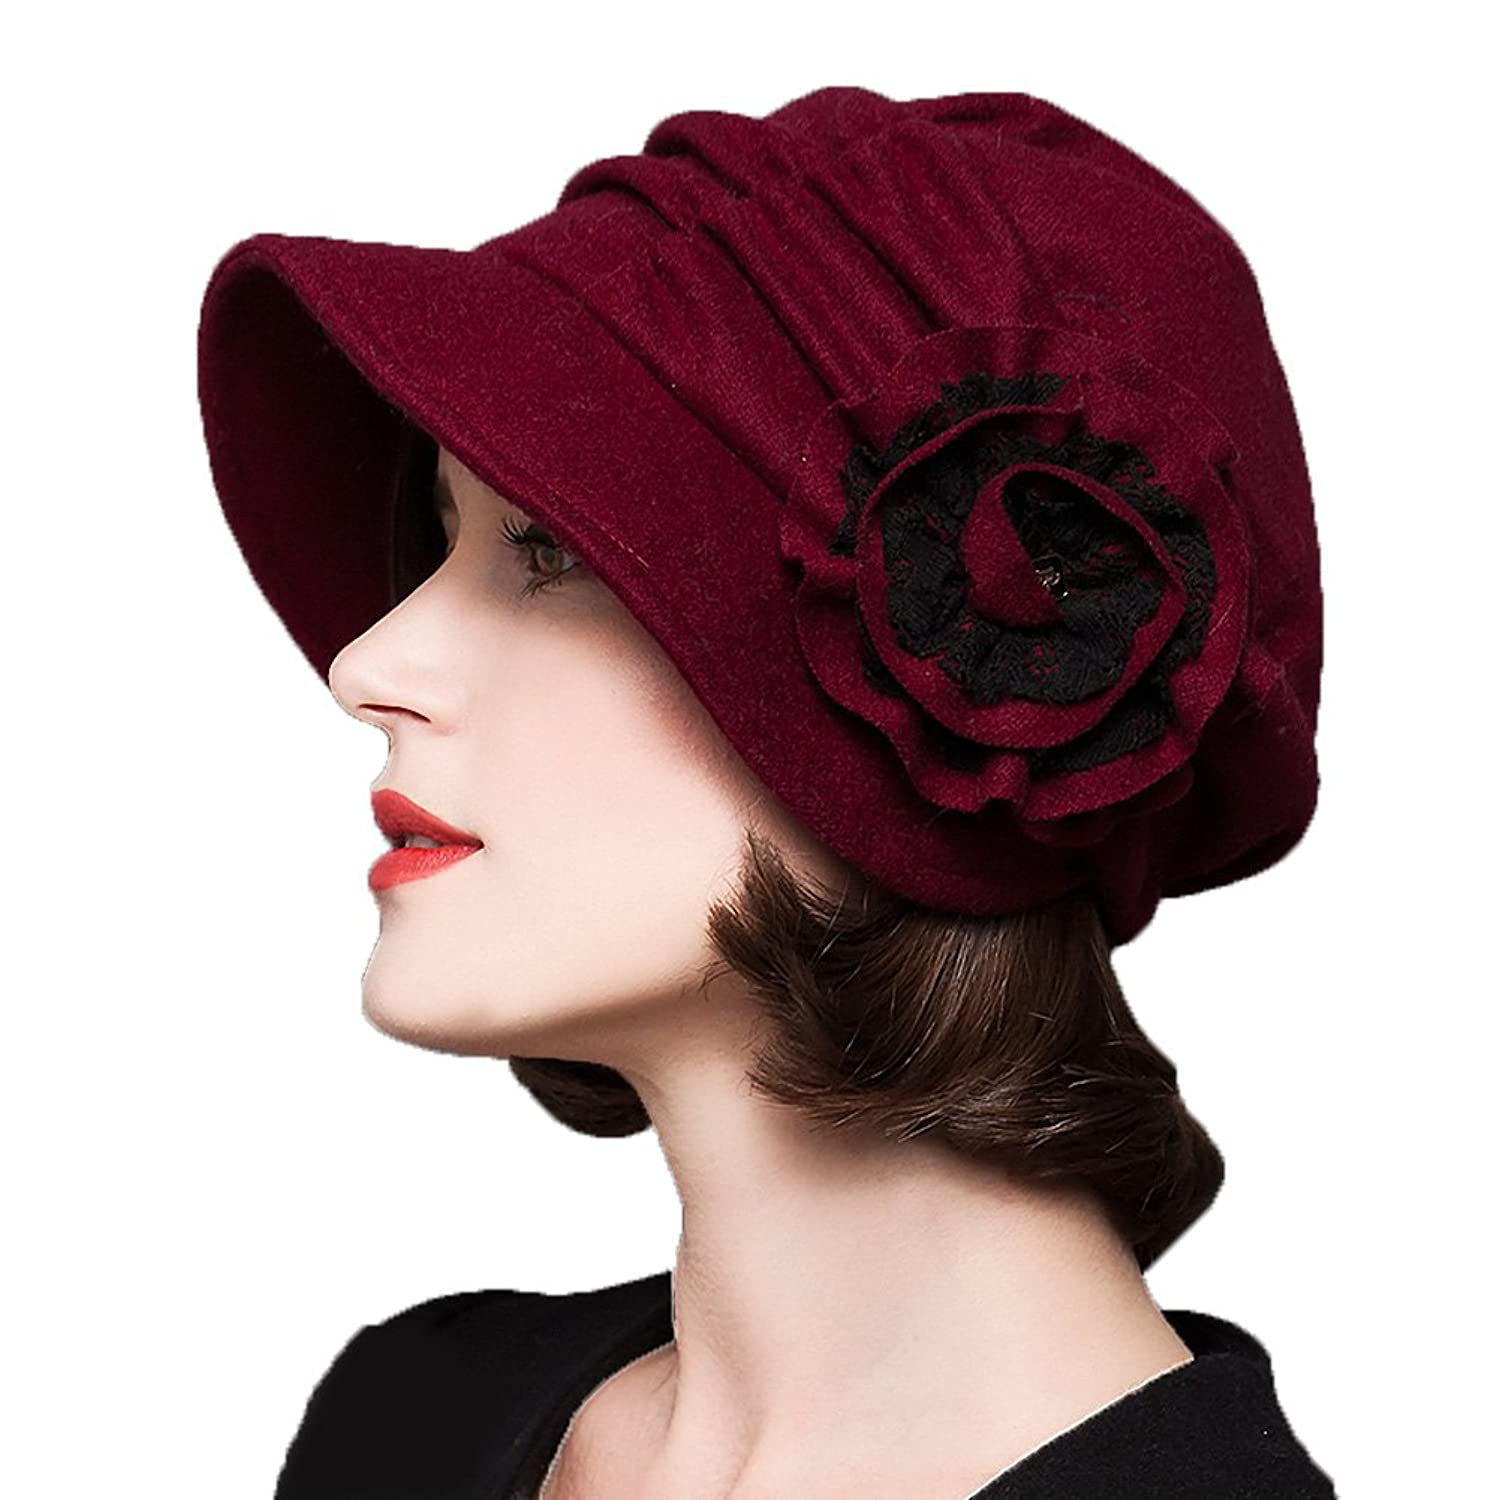 1930s Style Hats | Buy 30s Ladies Hats Decorative Flowers Wool Beret Maitose Trade Womens Decorative Flowers Wool Beret $28.40 AT vintagedancer.com